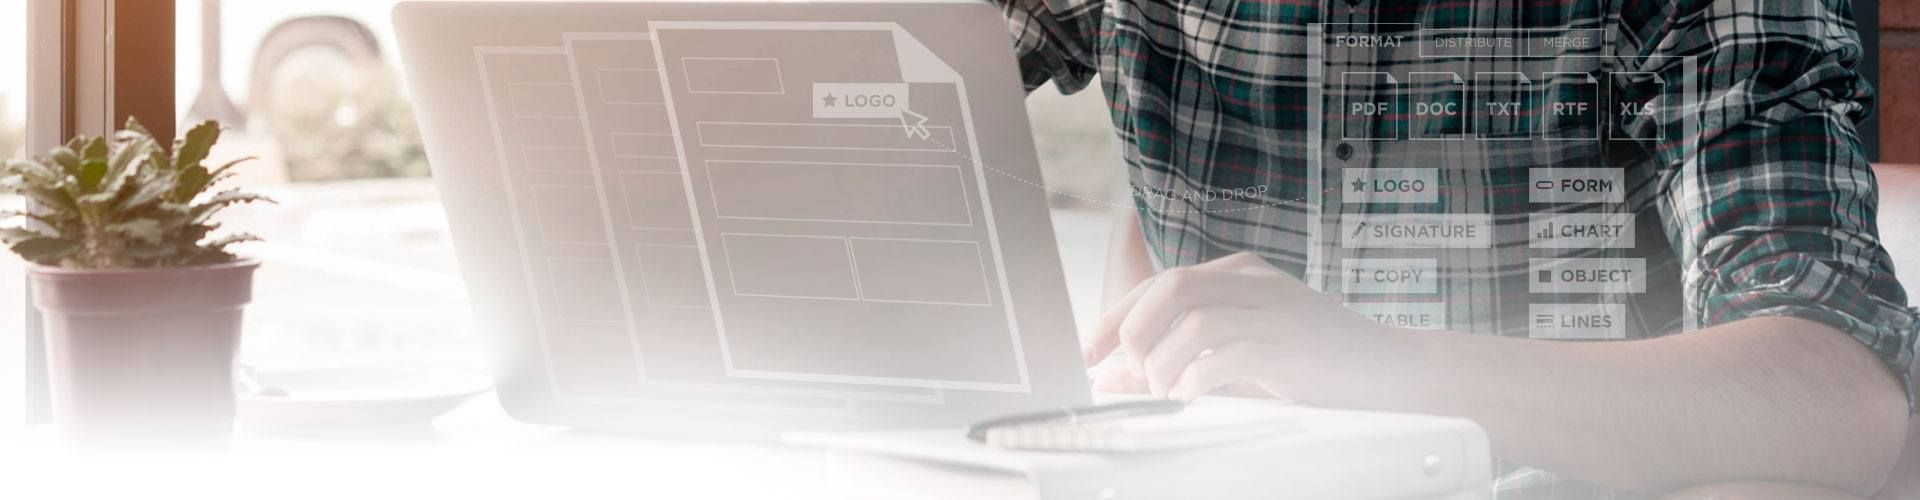 Accelerate processes with a document distribution system